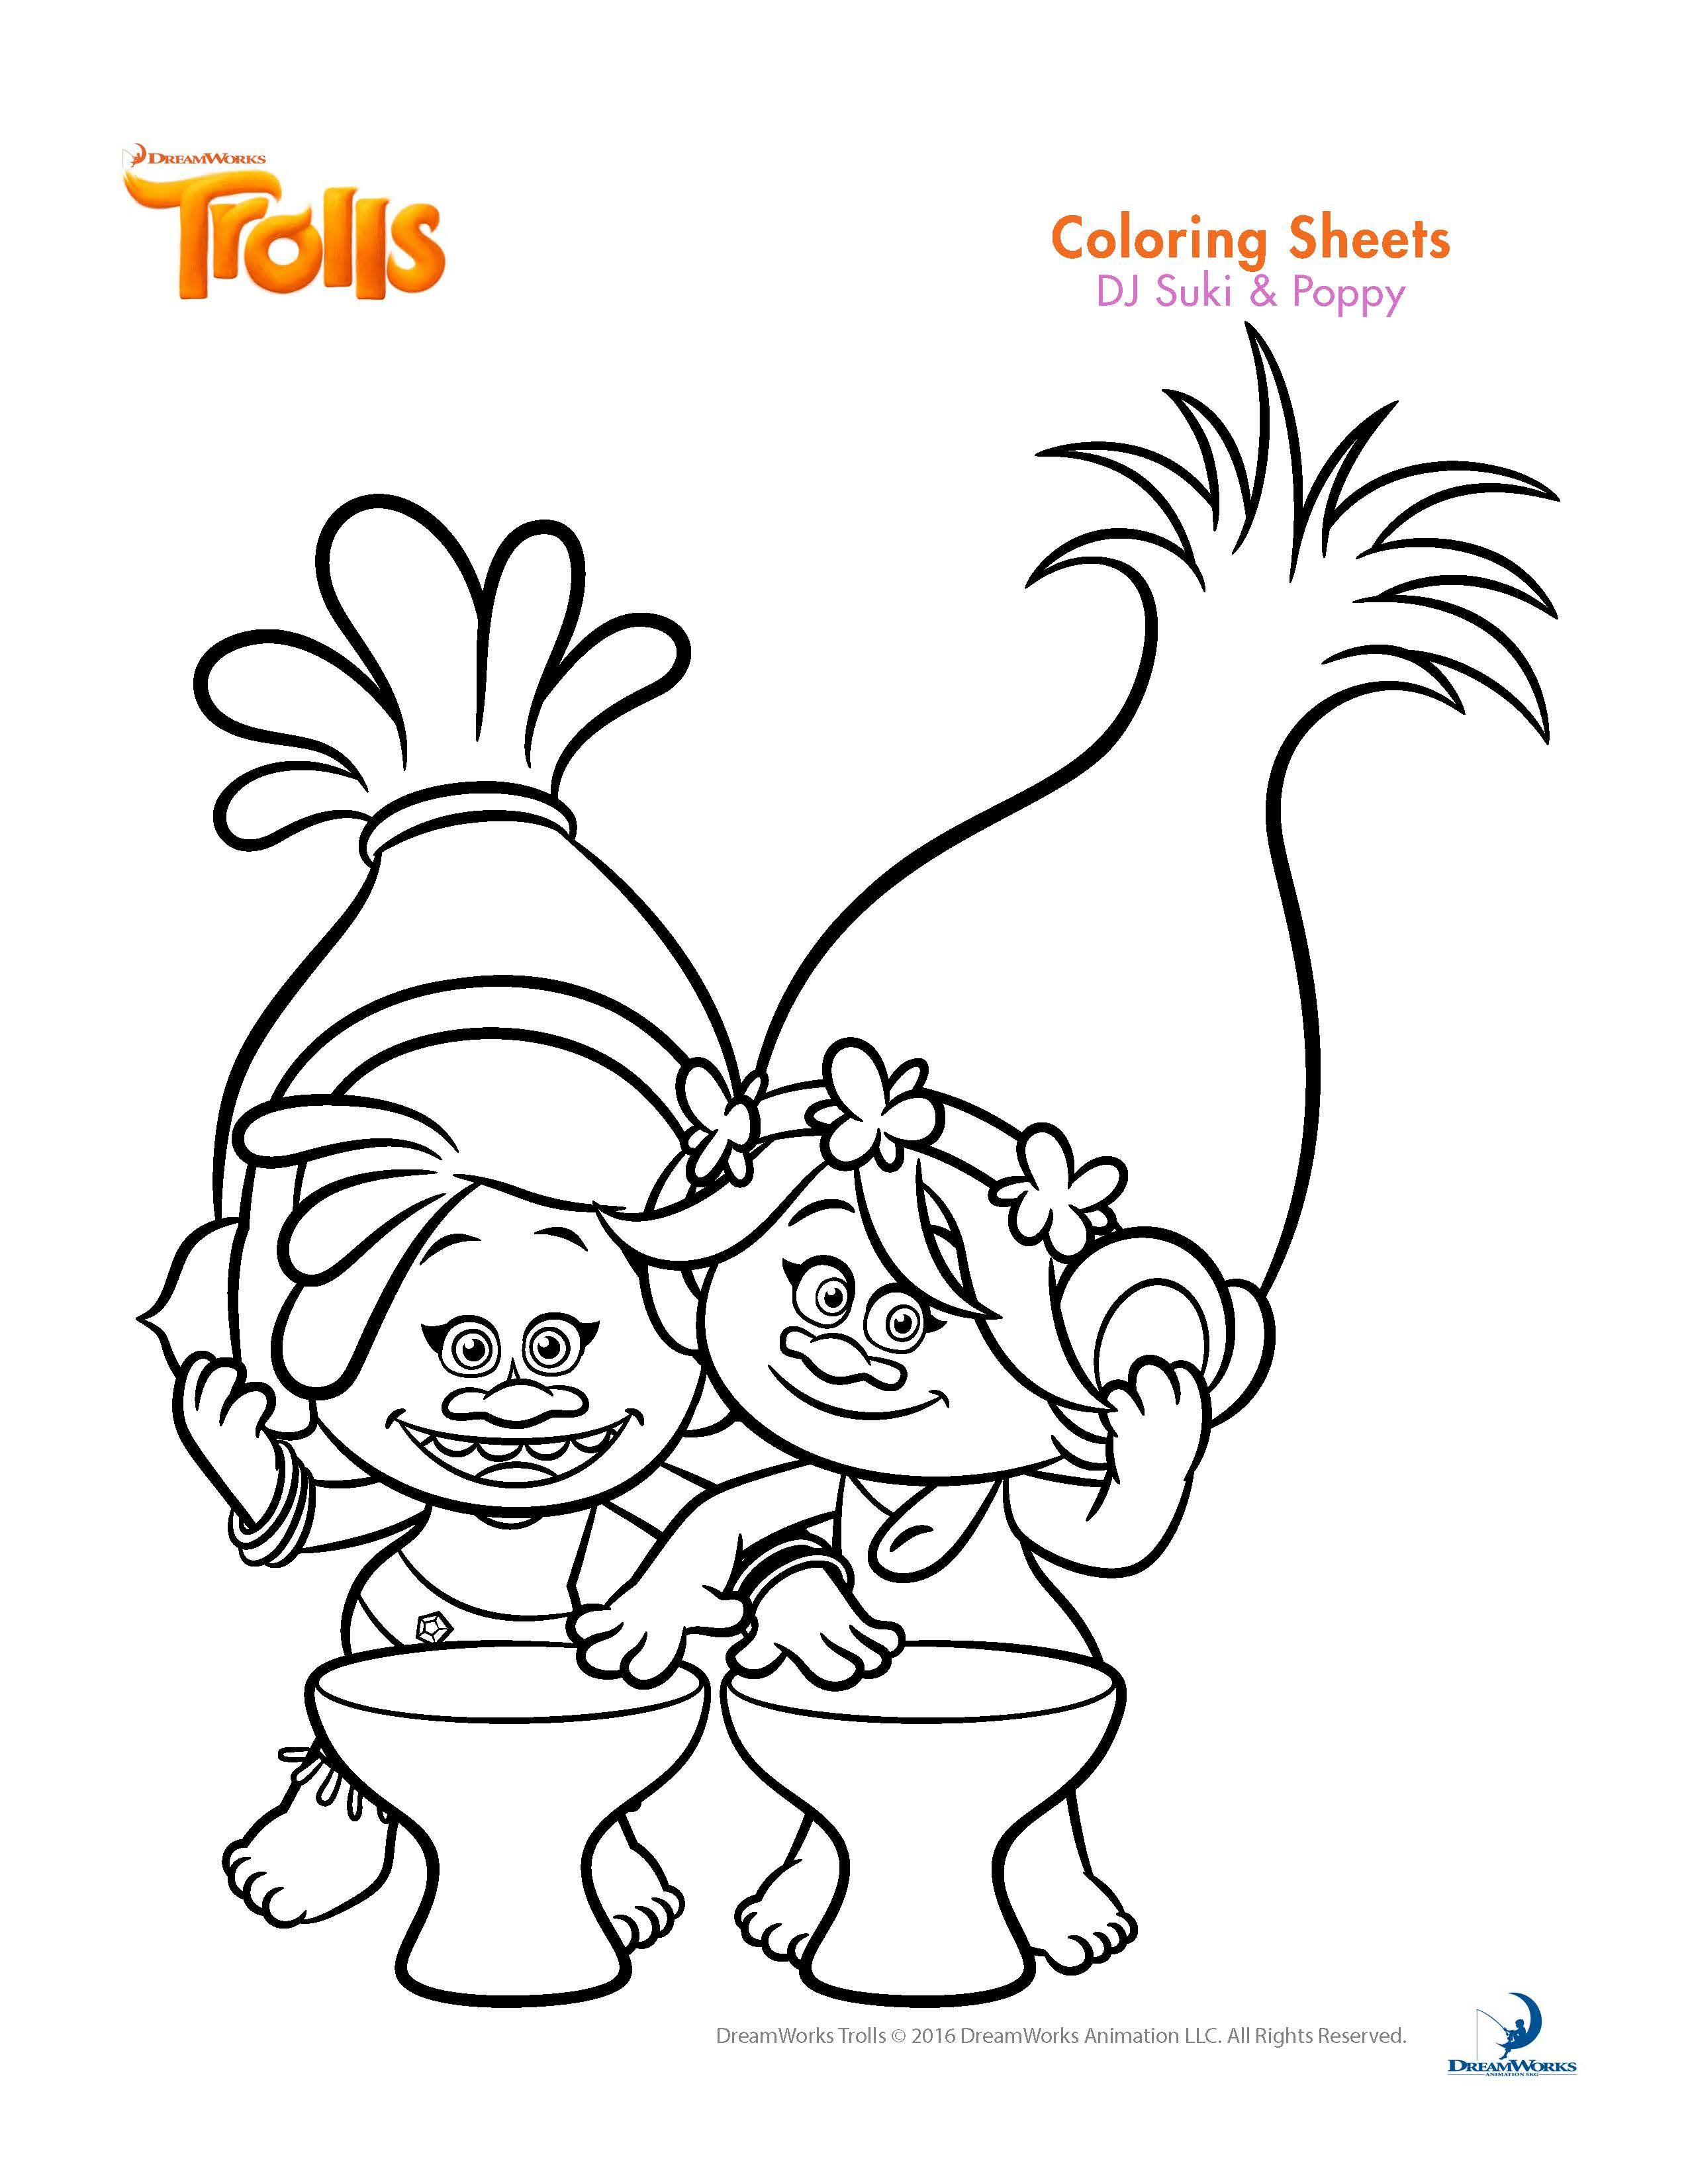 Trolls Coloring Pages And Printable Activity Sheets Poppy